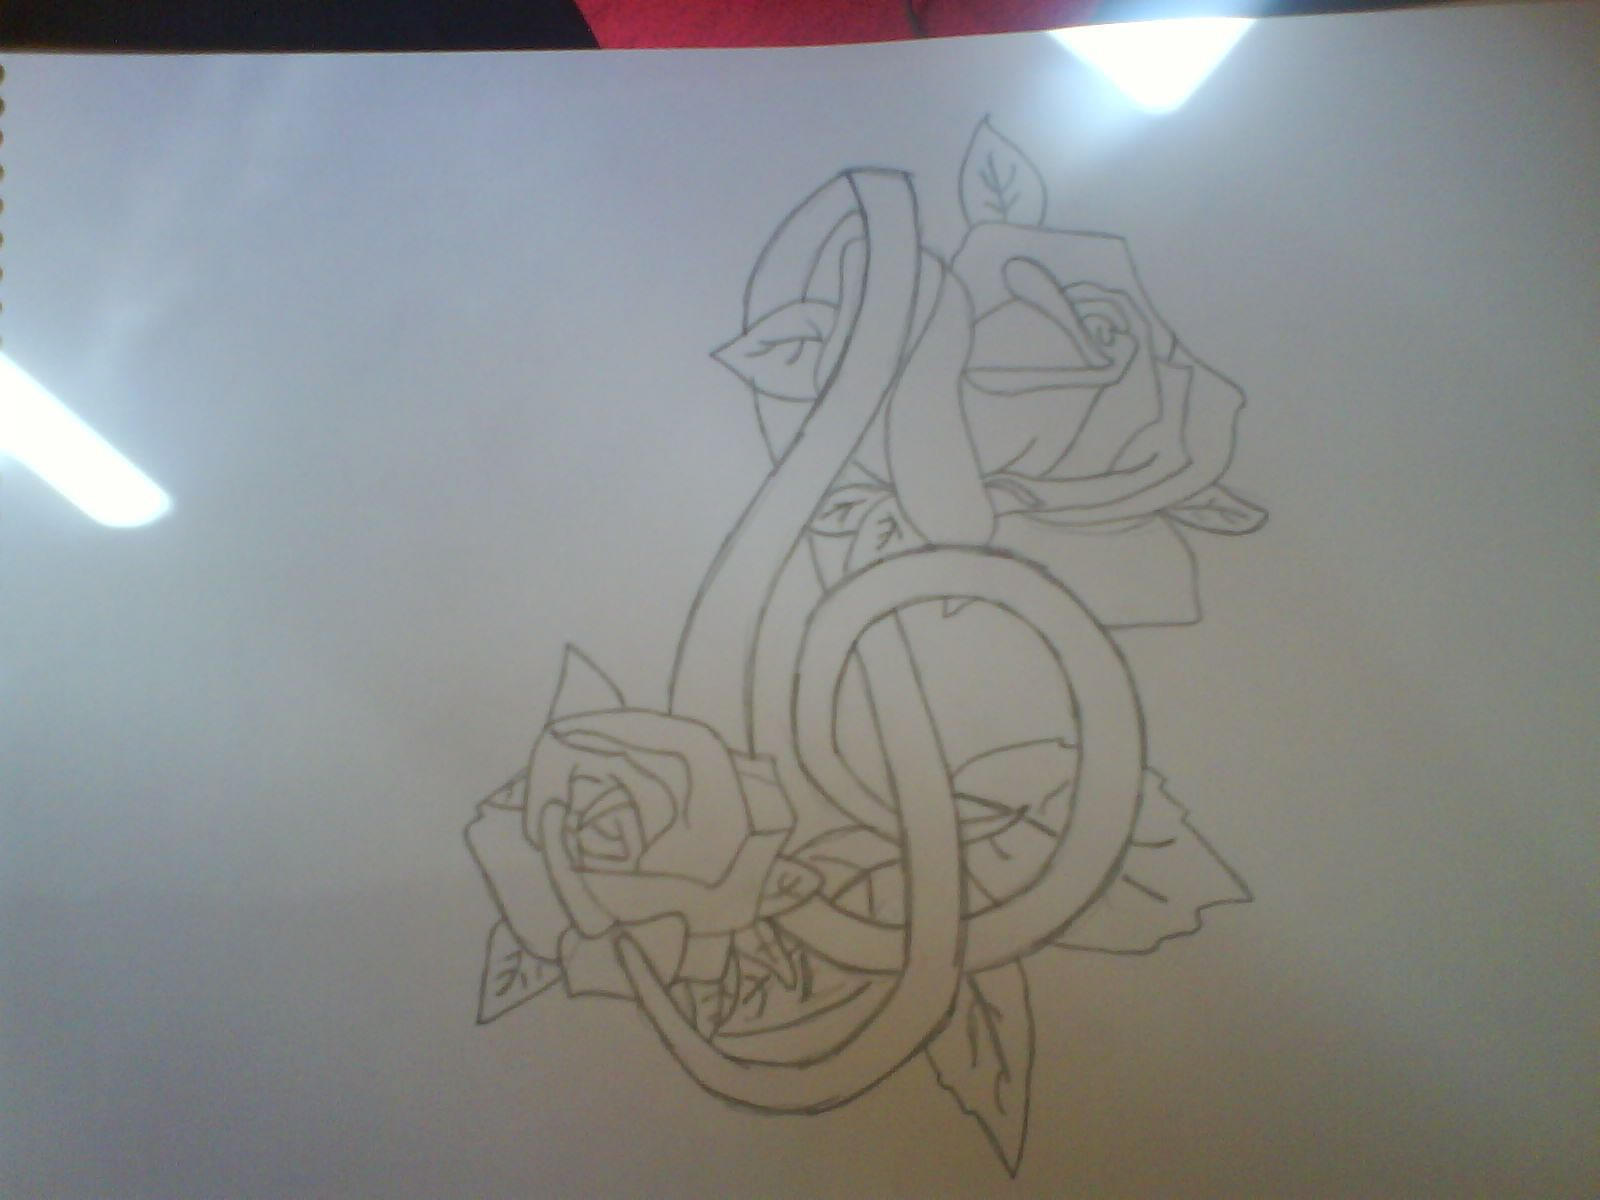 Musical tattoos music symbol and roses tattoo by plaistowkidd on a drawing of a musical symbol with roses music symbol and roses tattoo buycottarizona Gallery